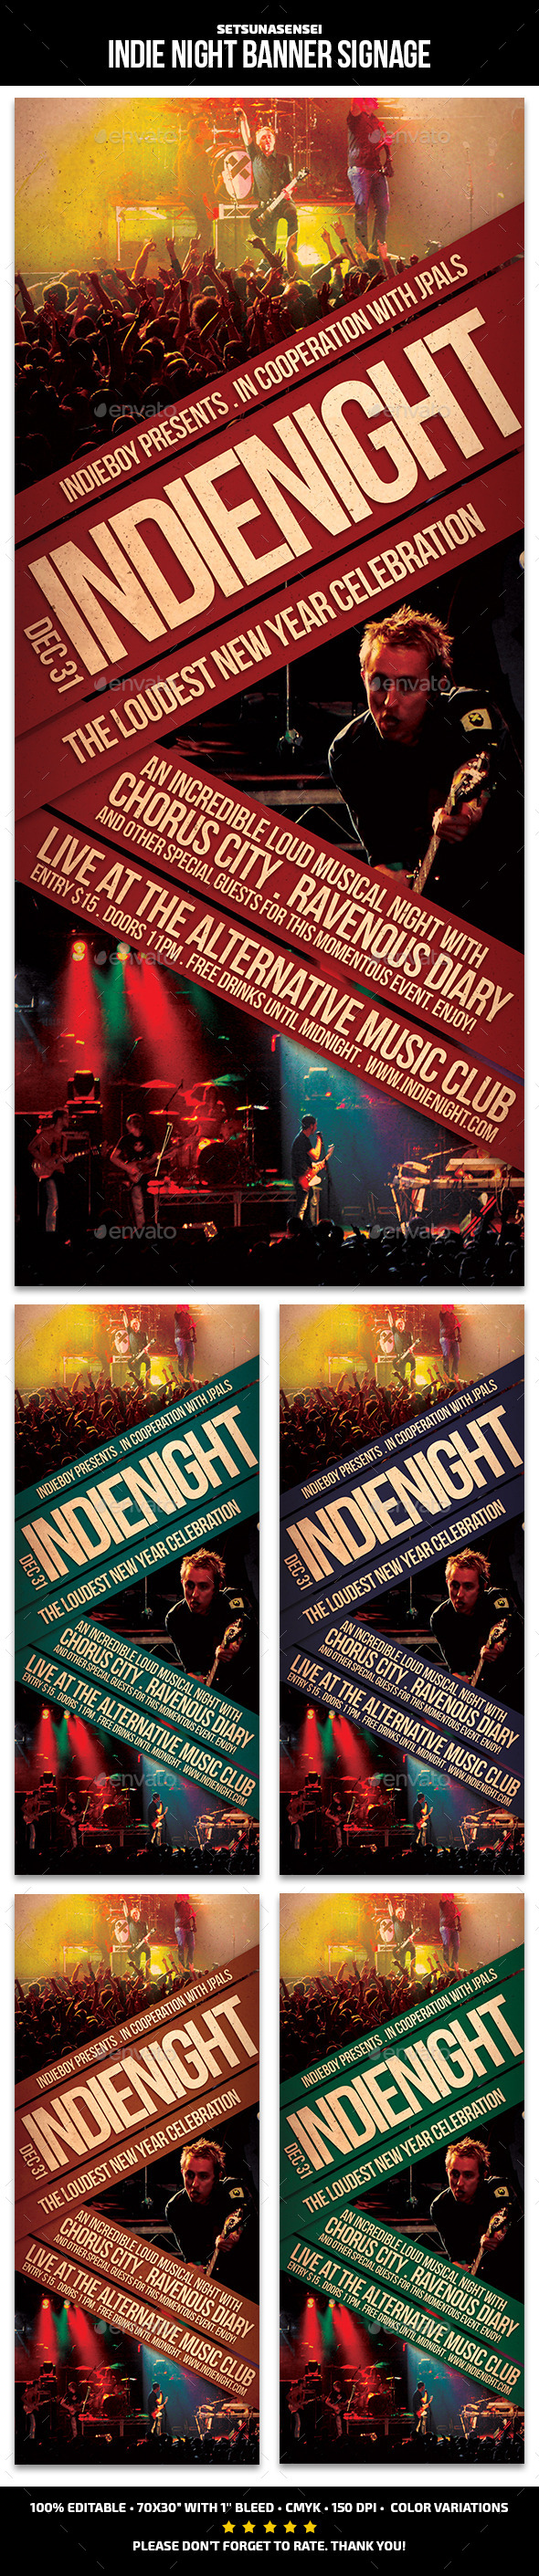 Indie Night Banner Signage